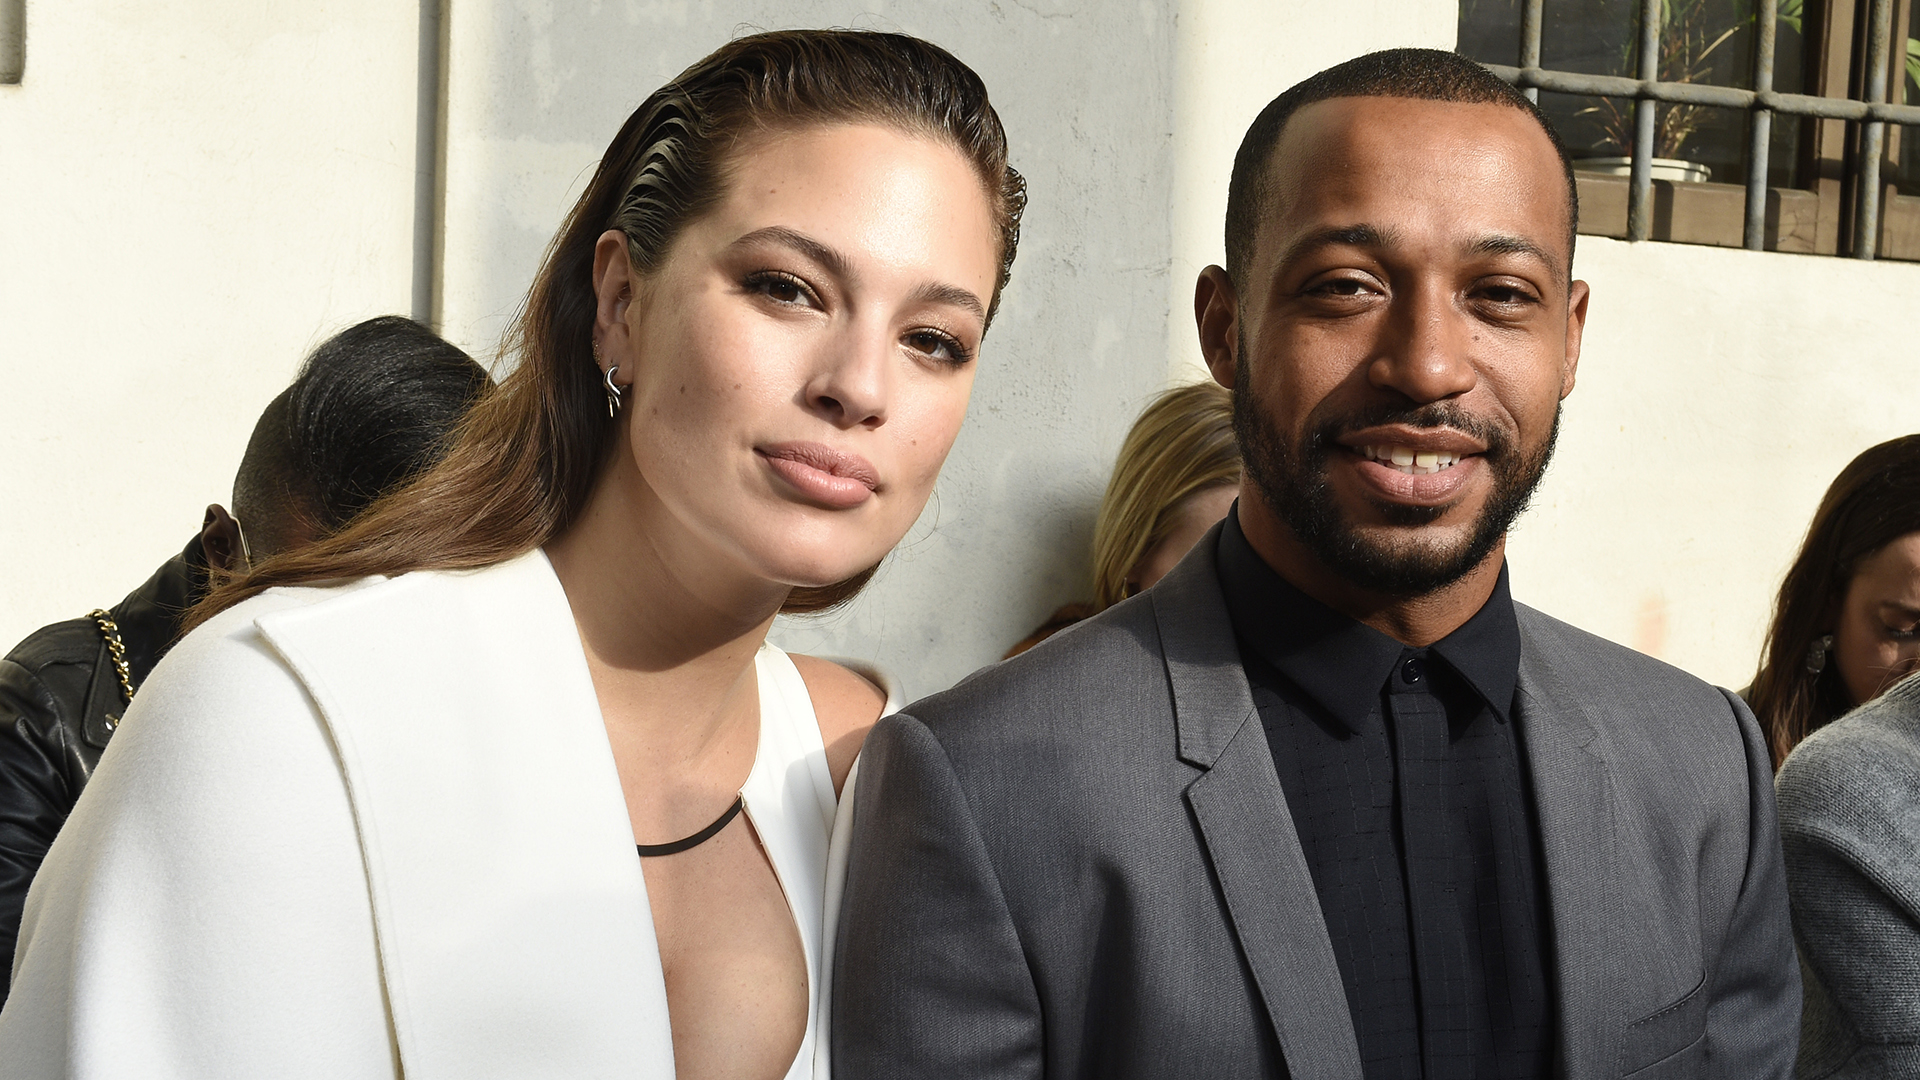 Ashley Graham Opens Up About Her Family's Initial Racism Toward Her Black Husband